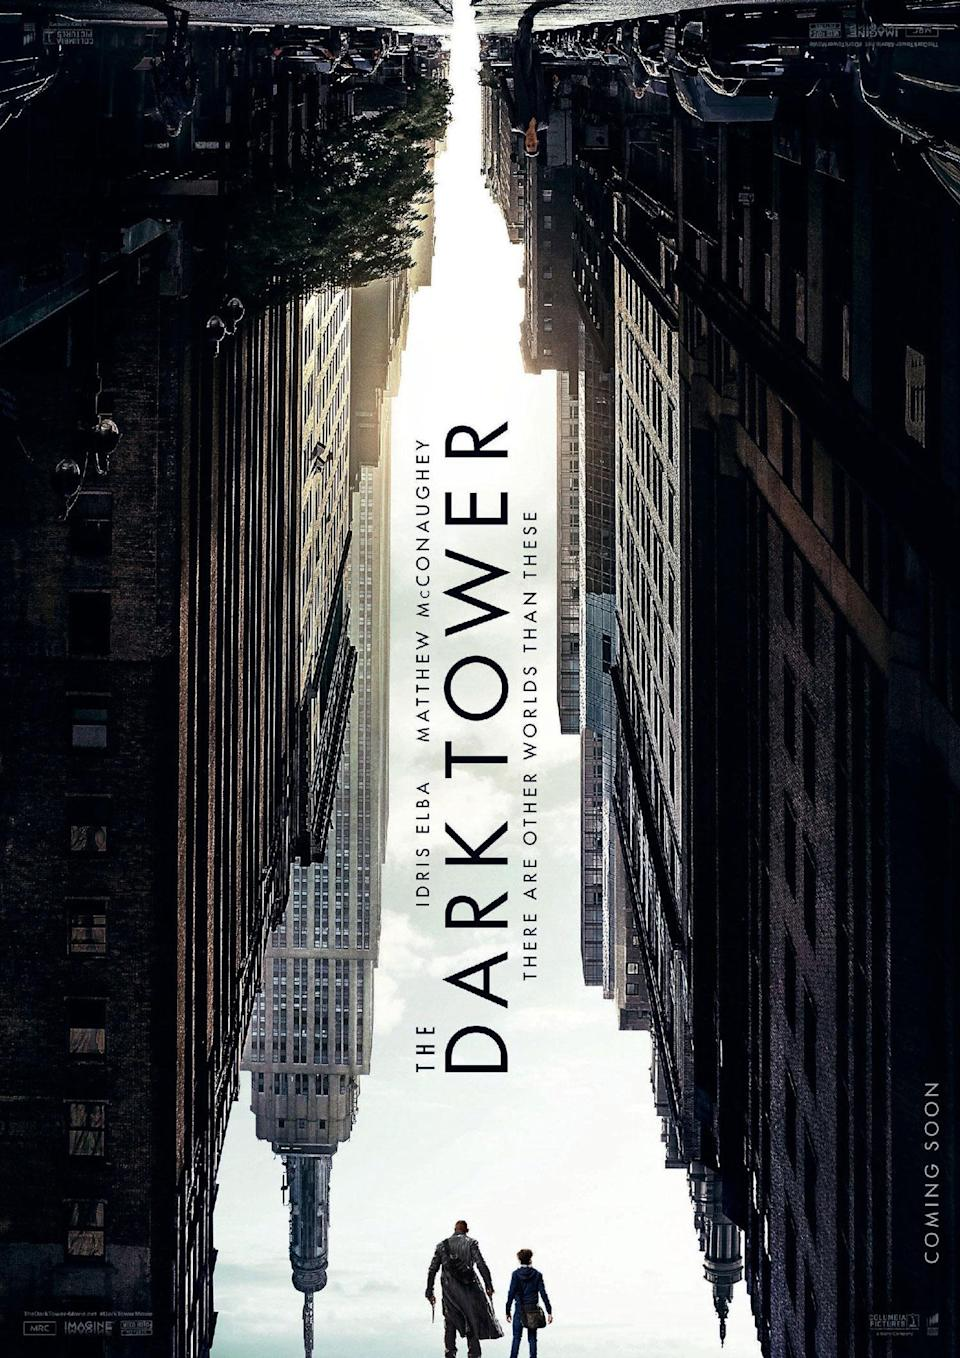 <p>Even in a banner year for Stephen King, 'The Dark Tower' bombed – but if the movie was half as captivating as this first teaser poster, maybe it would have found more of an audience. Neatly symbolising the inverse worlds of the story, it crafts an alternative universe Empire State Building from the negative space of our world. Oh, and it works upside down as well. </p>